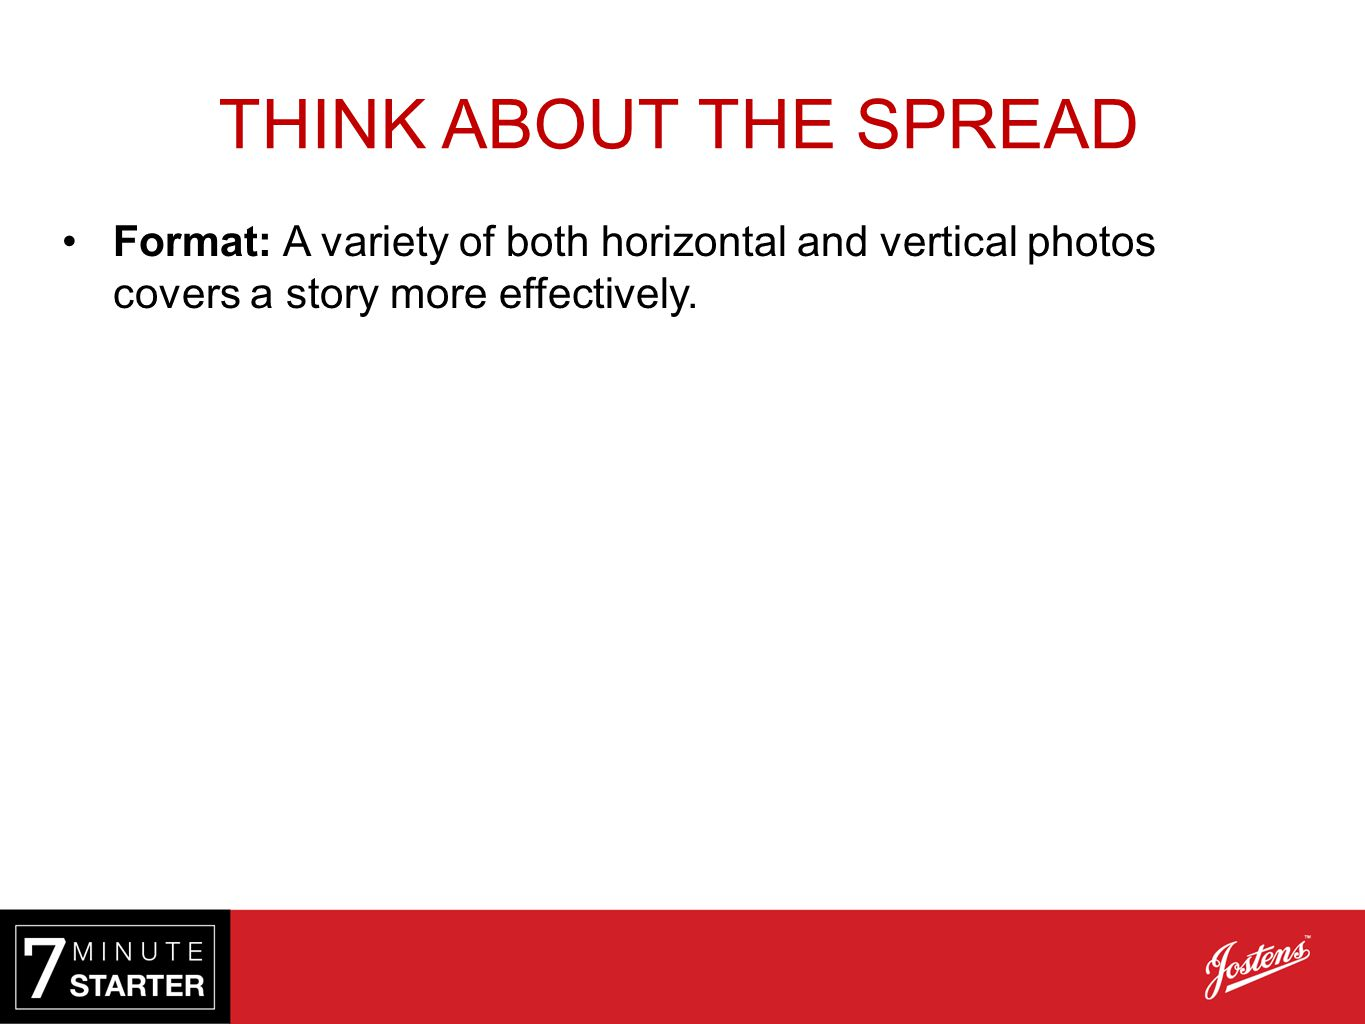 THINK ABOUT THE SPREAD Format: A variety of both horizontal and vertical photos covers a story more effectively.